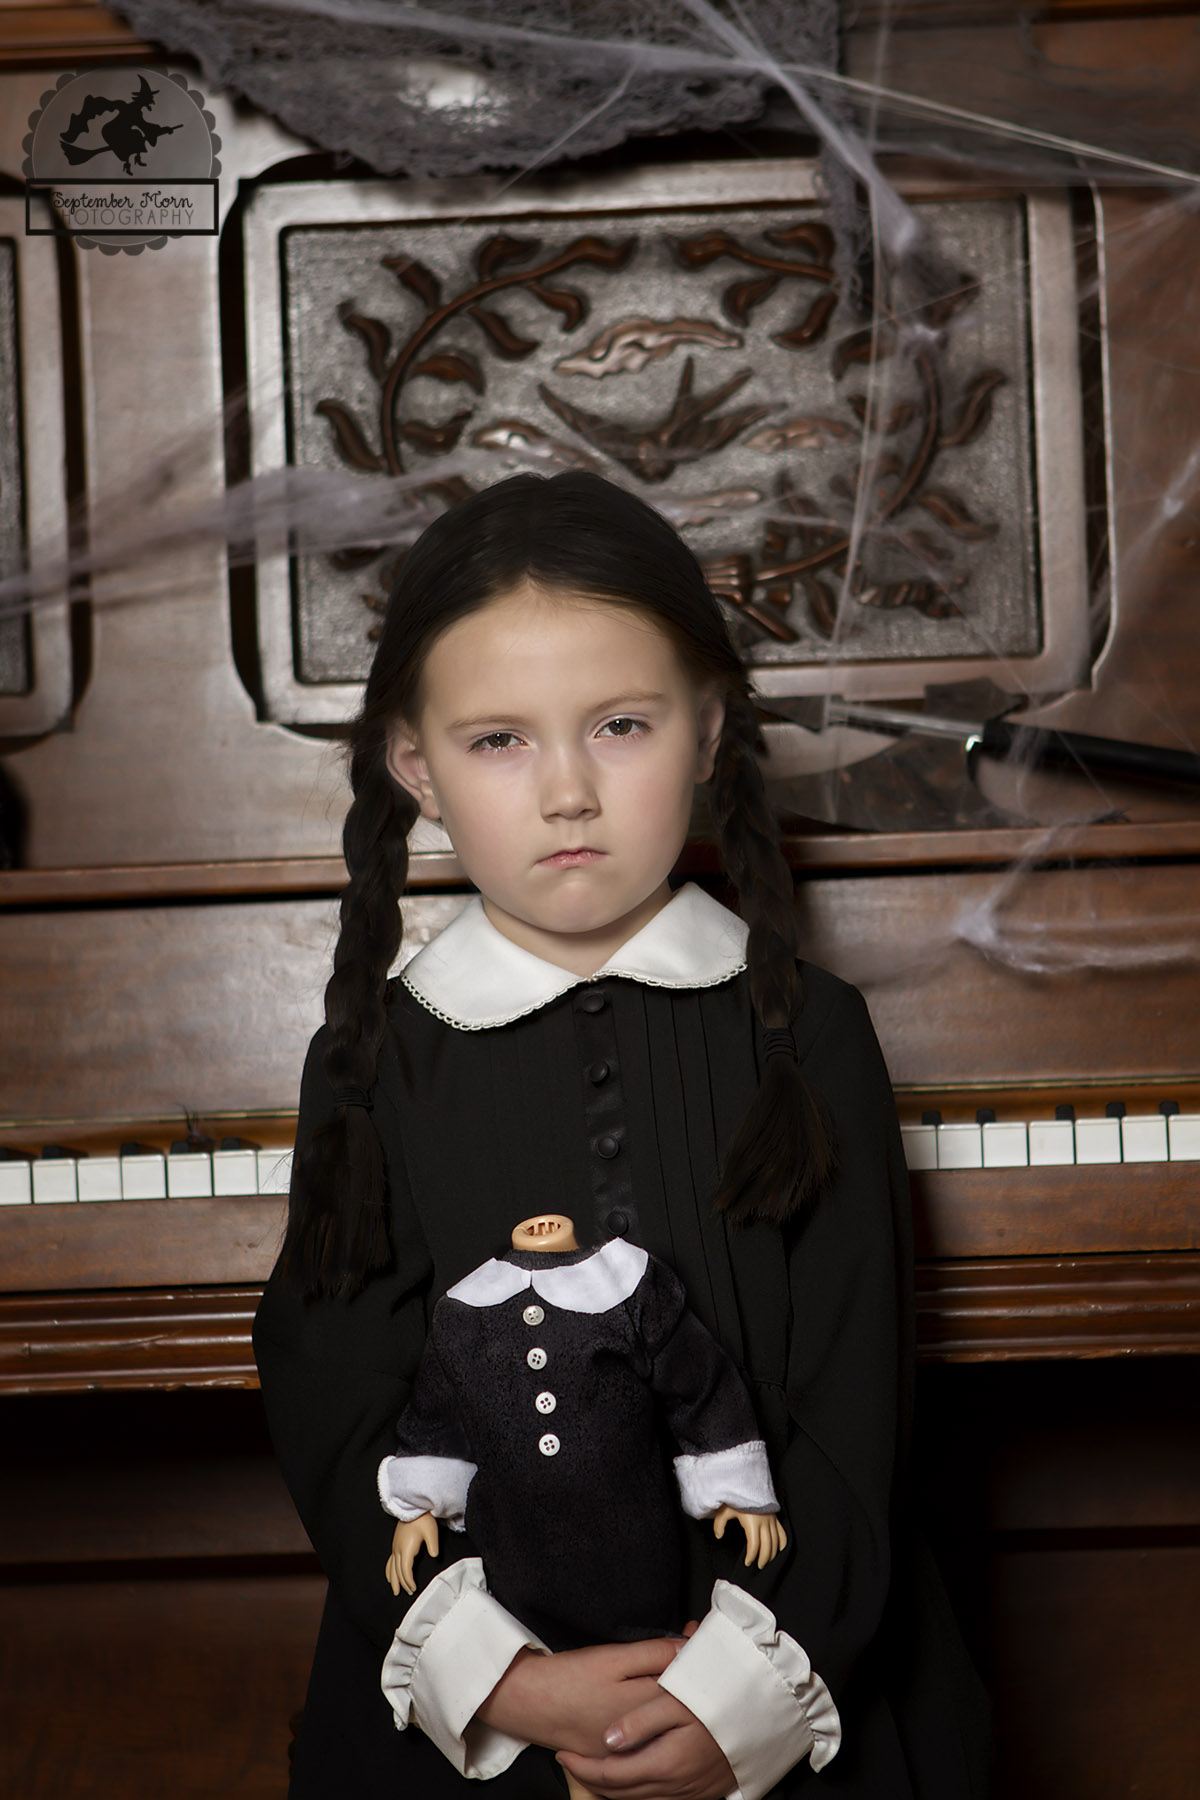 Day 26 Wednesday Addams Stellaween